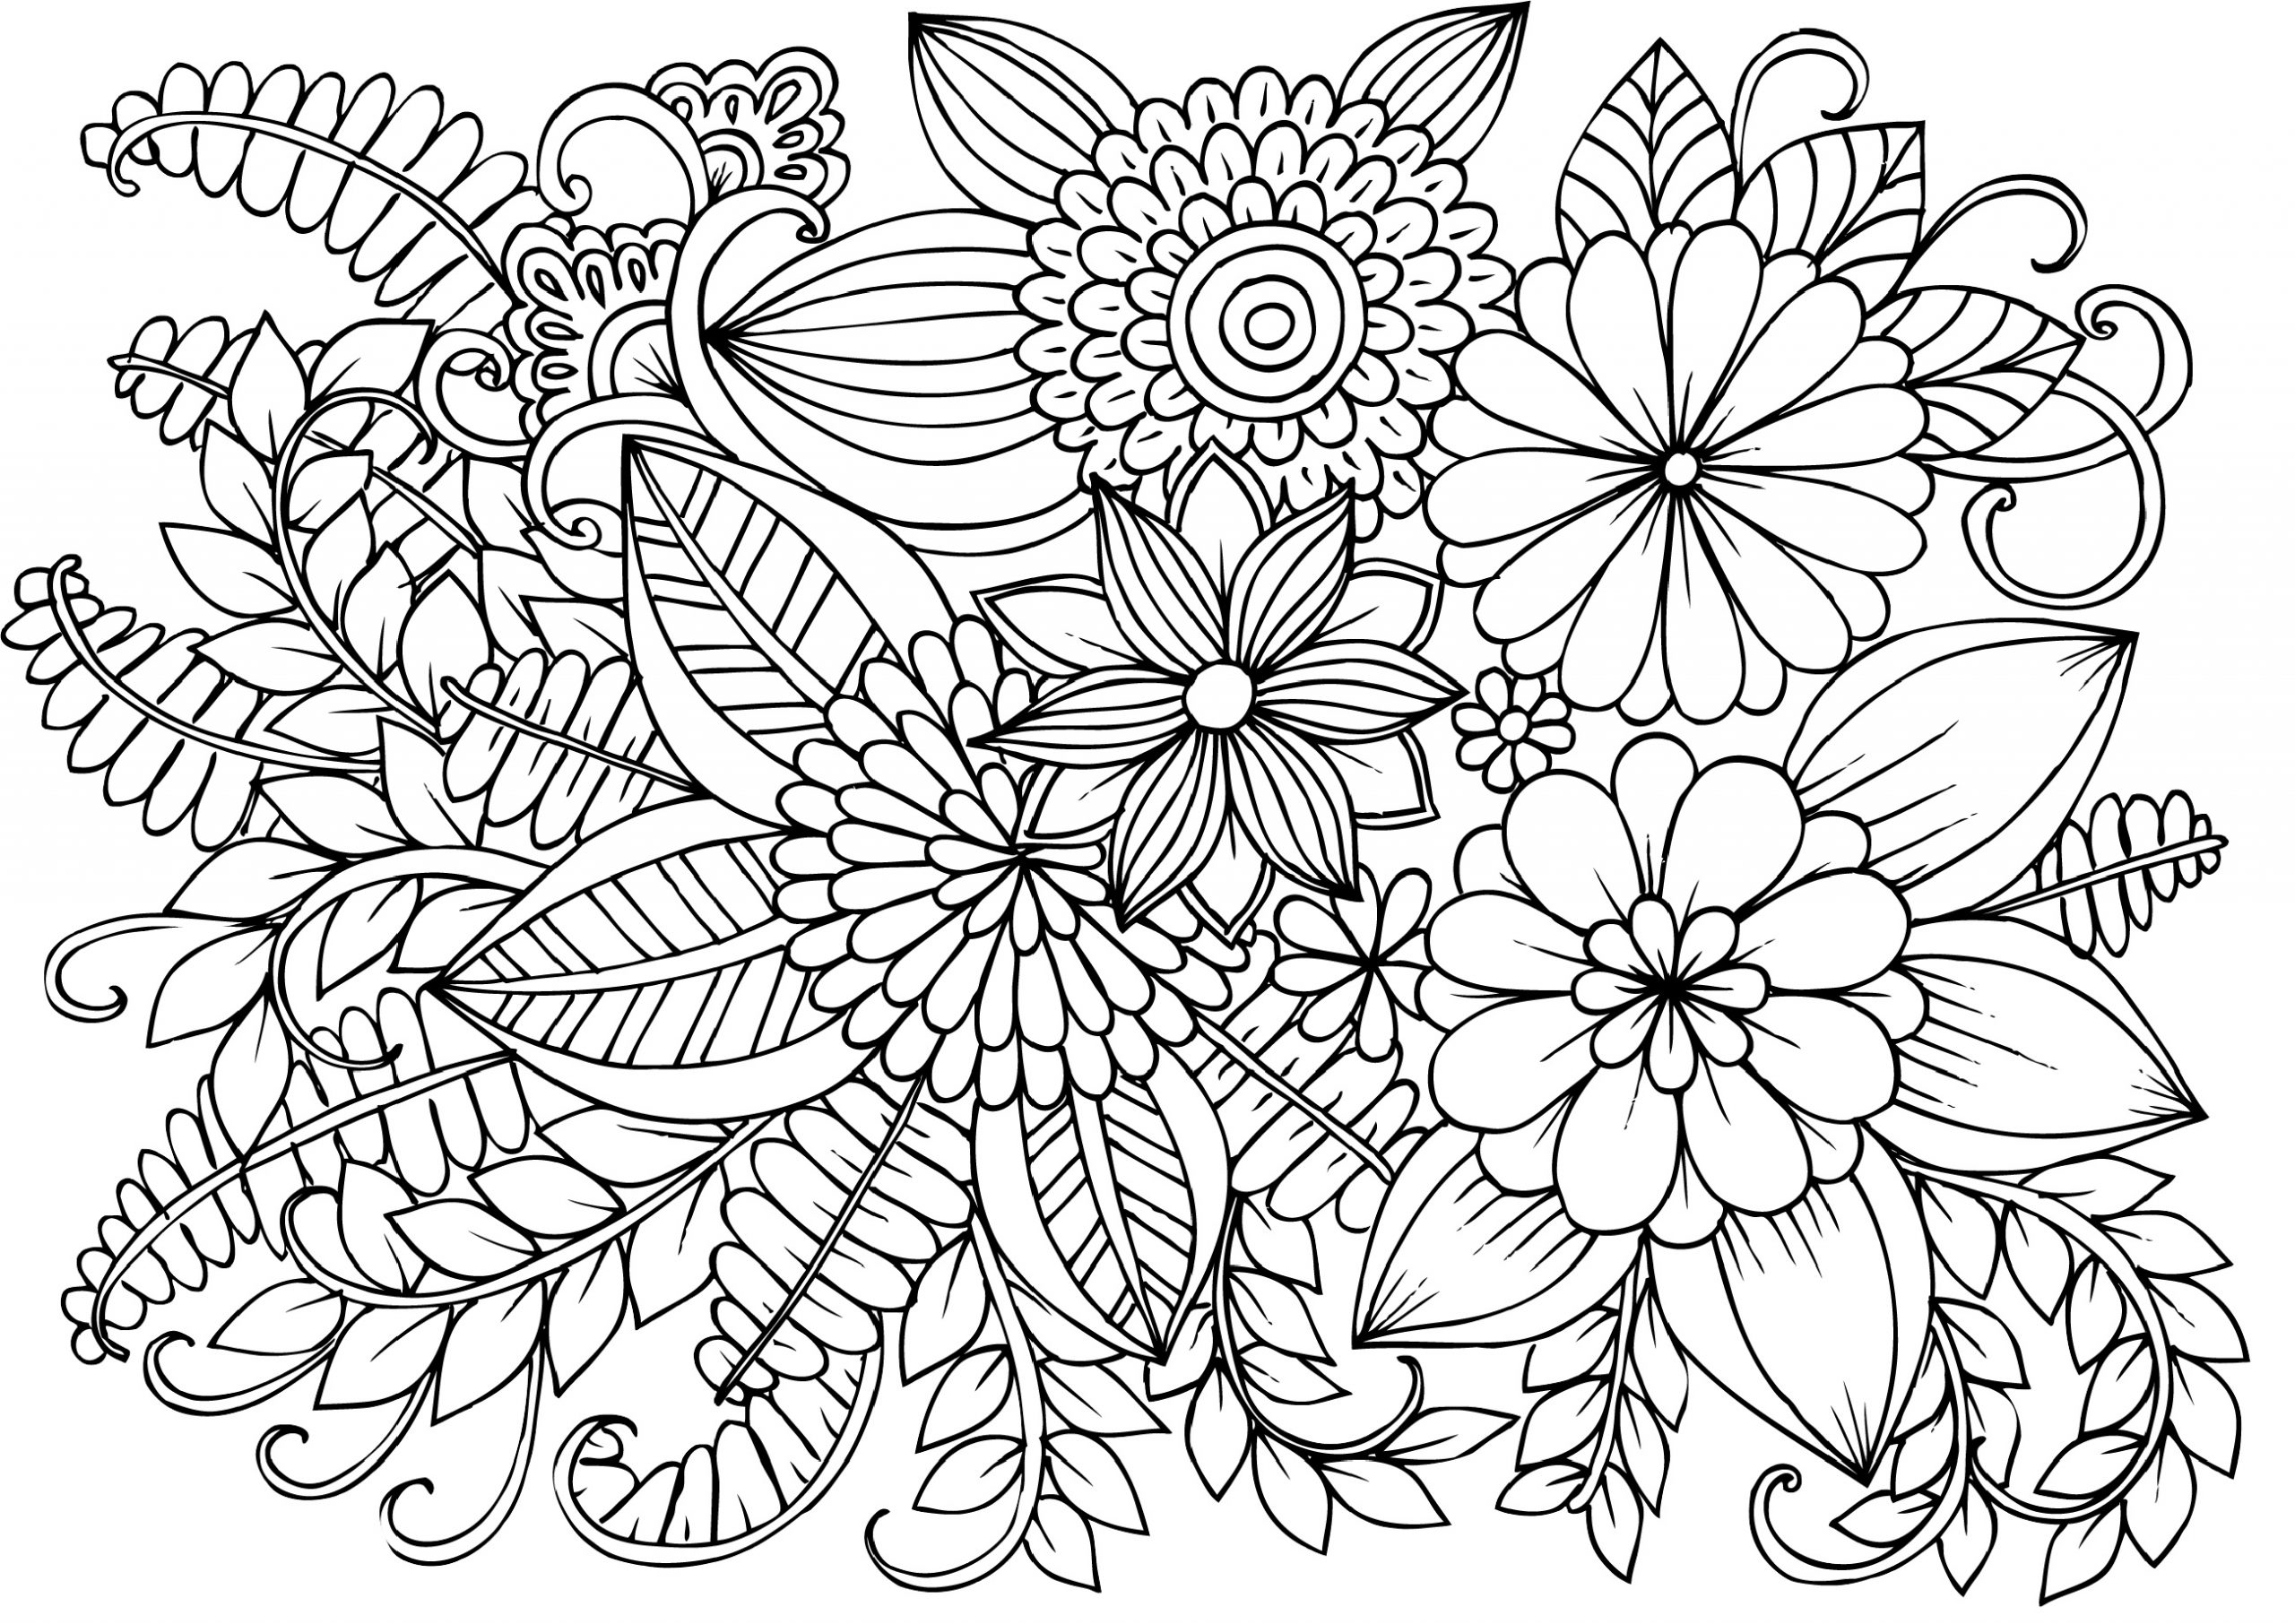 pictures of flowers to color clipart colouring flower pictures on cliparts pub 2020 flowers to pictures of color